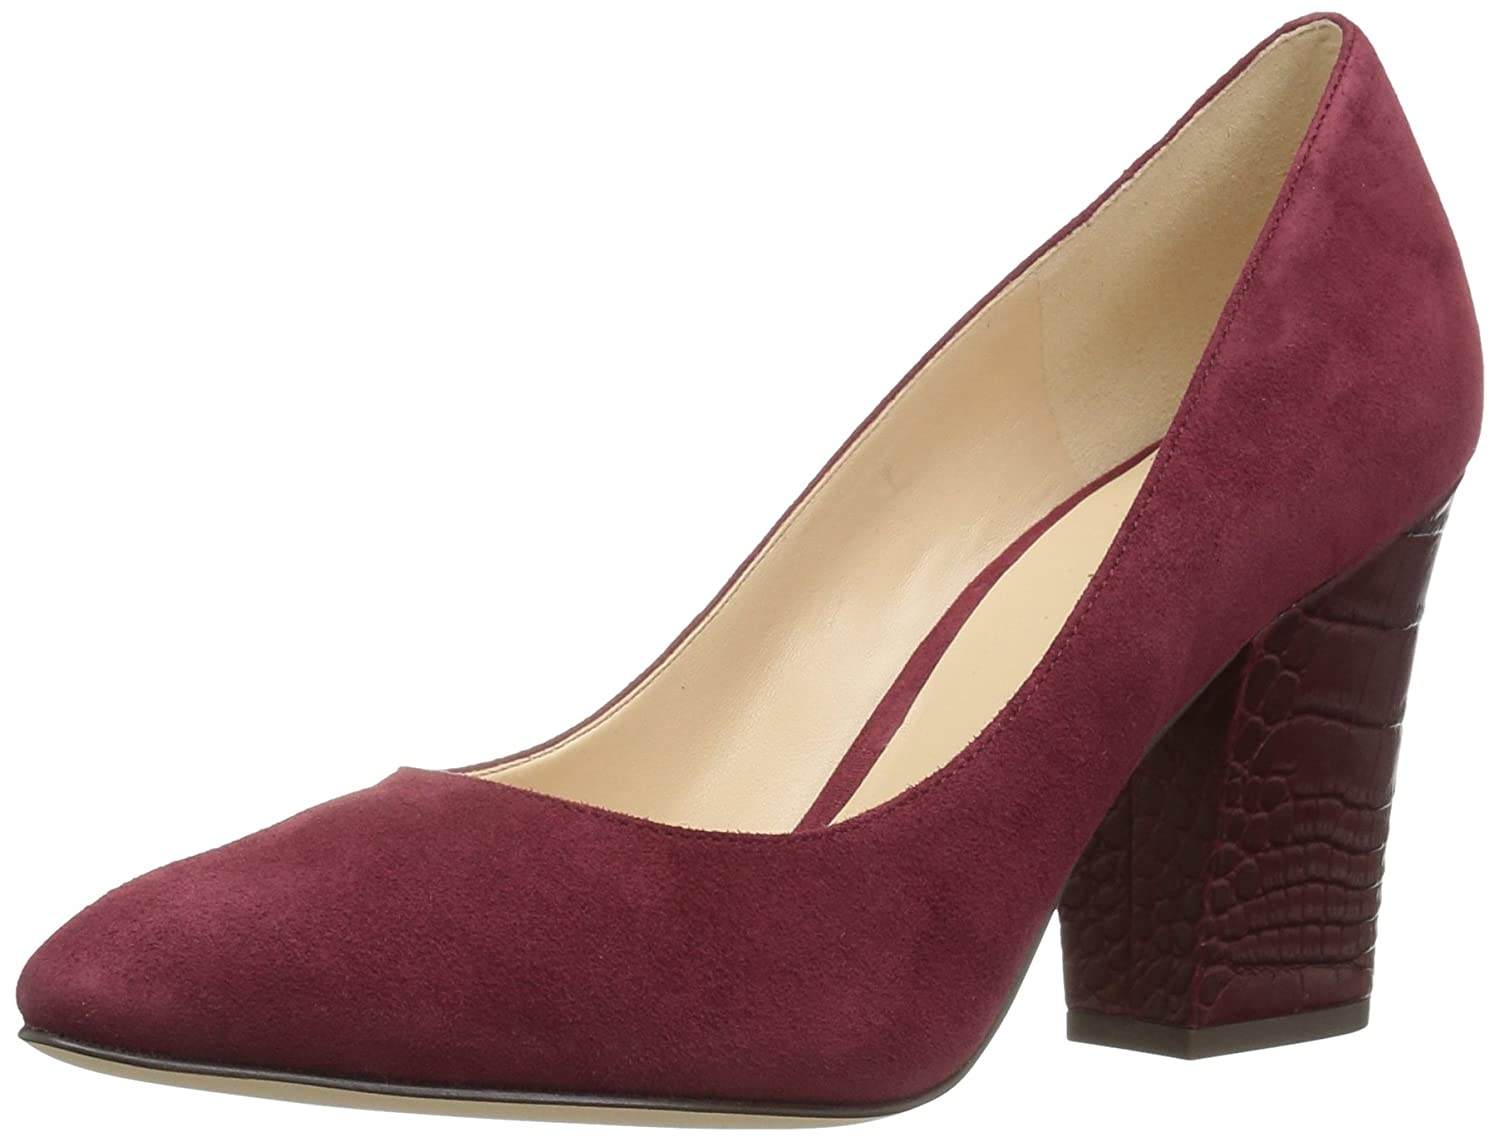 Nine West Women's Scheila Suede Dress Pump B01N2OYGTP 7 B(M) US|Oxblood